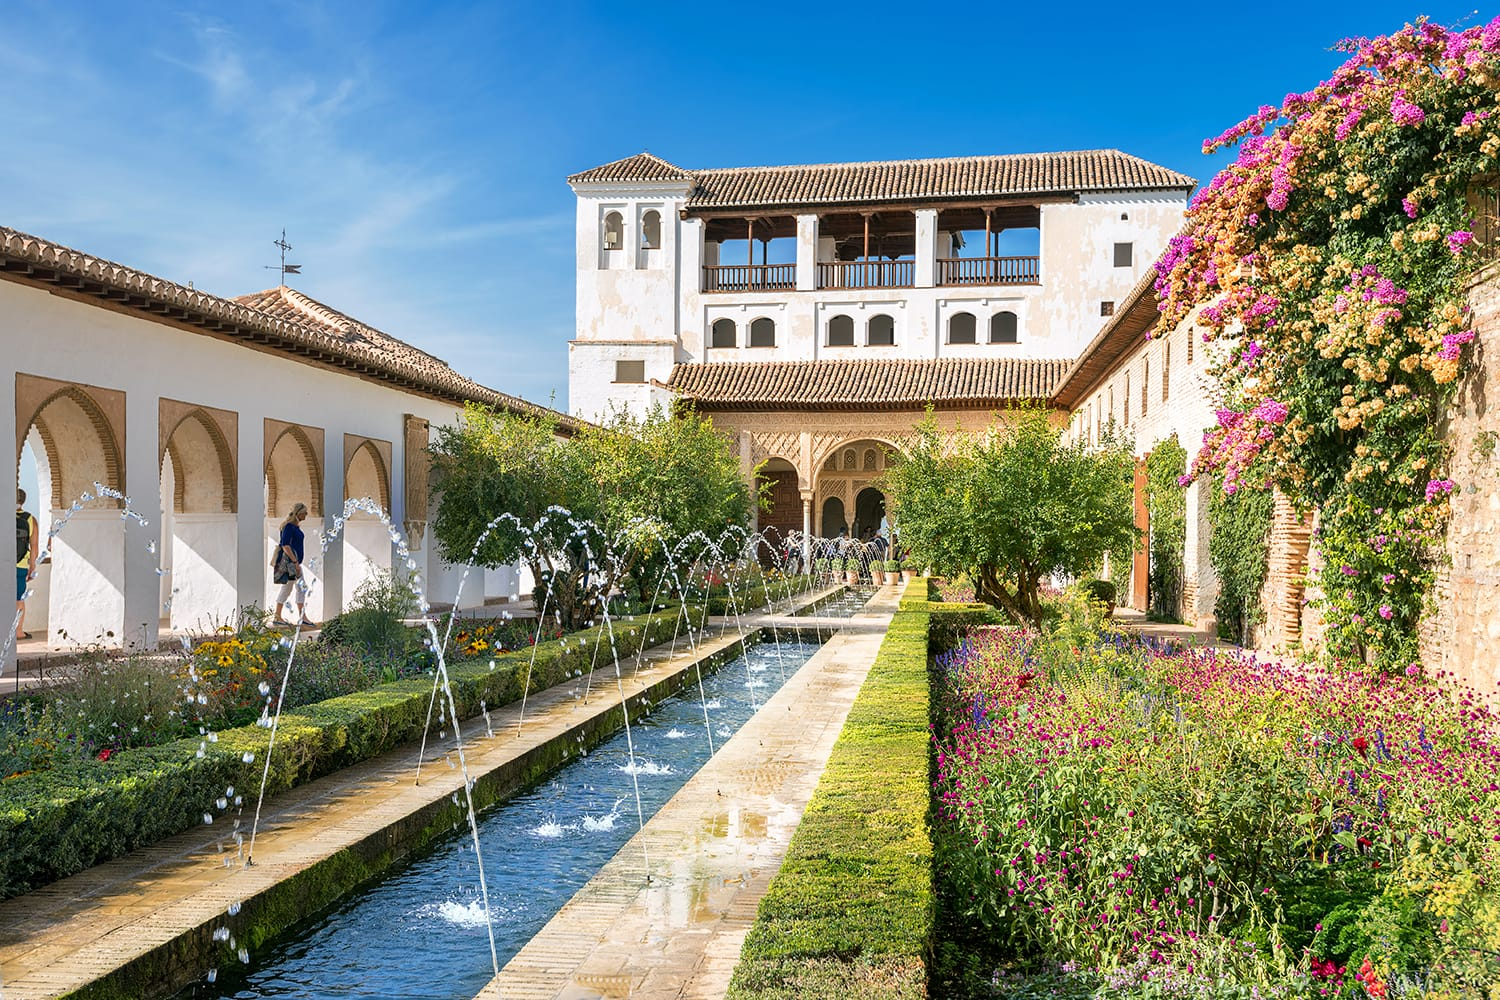 View of Generalife courtyard with fountain in Alhambra palace. Granada, Andalusia, Spain